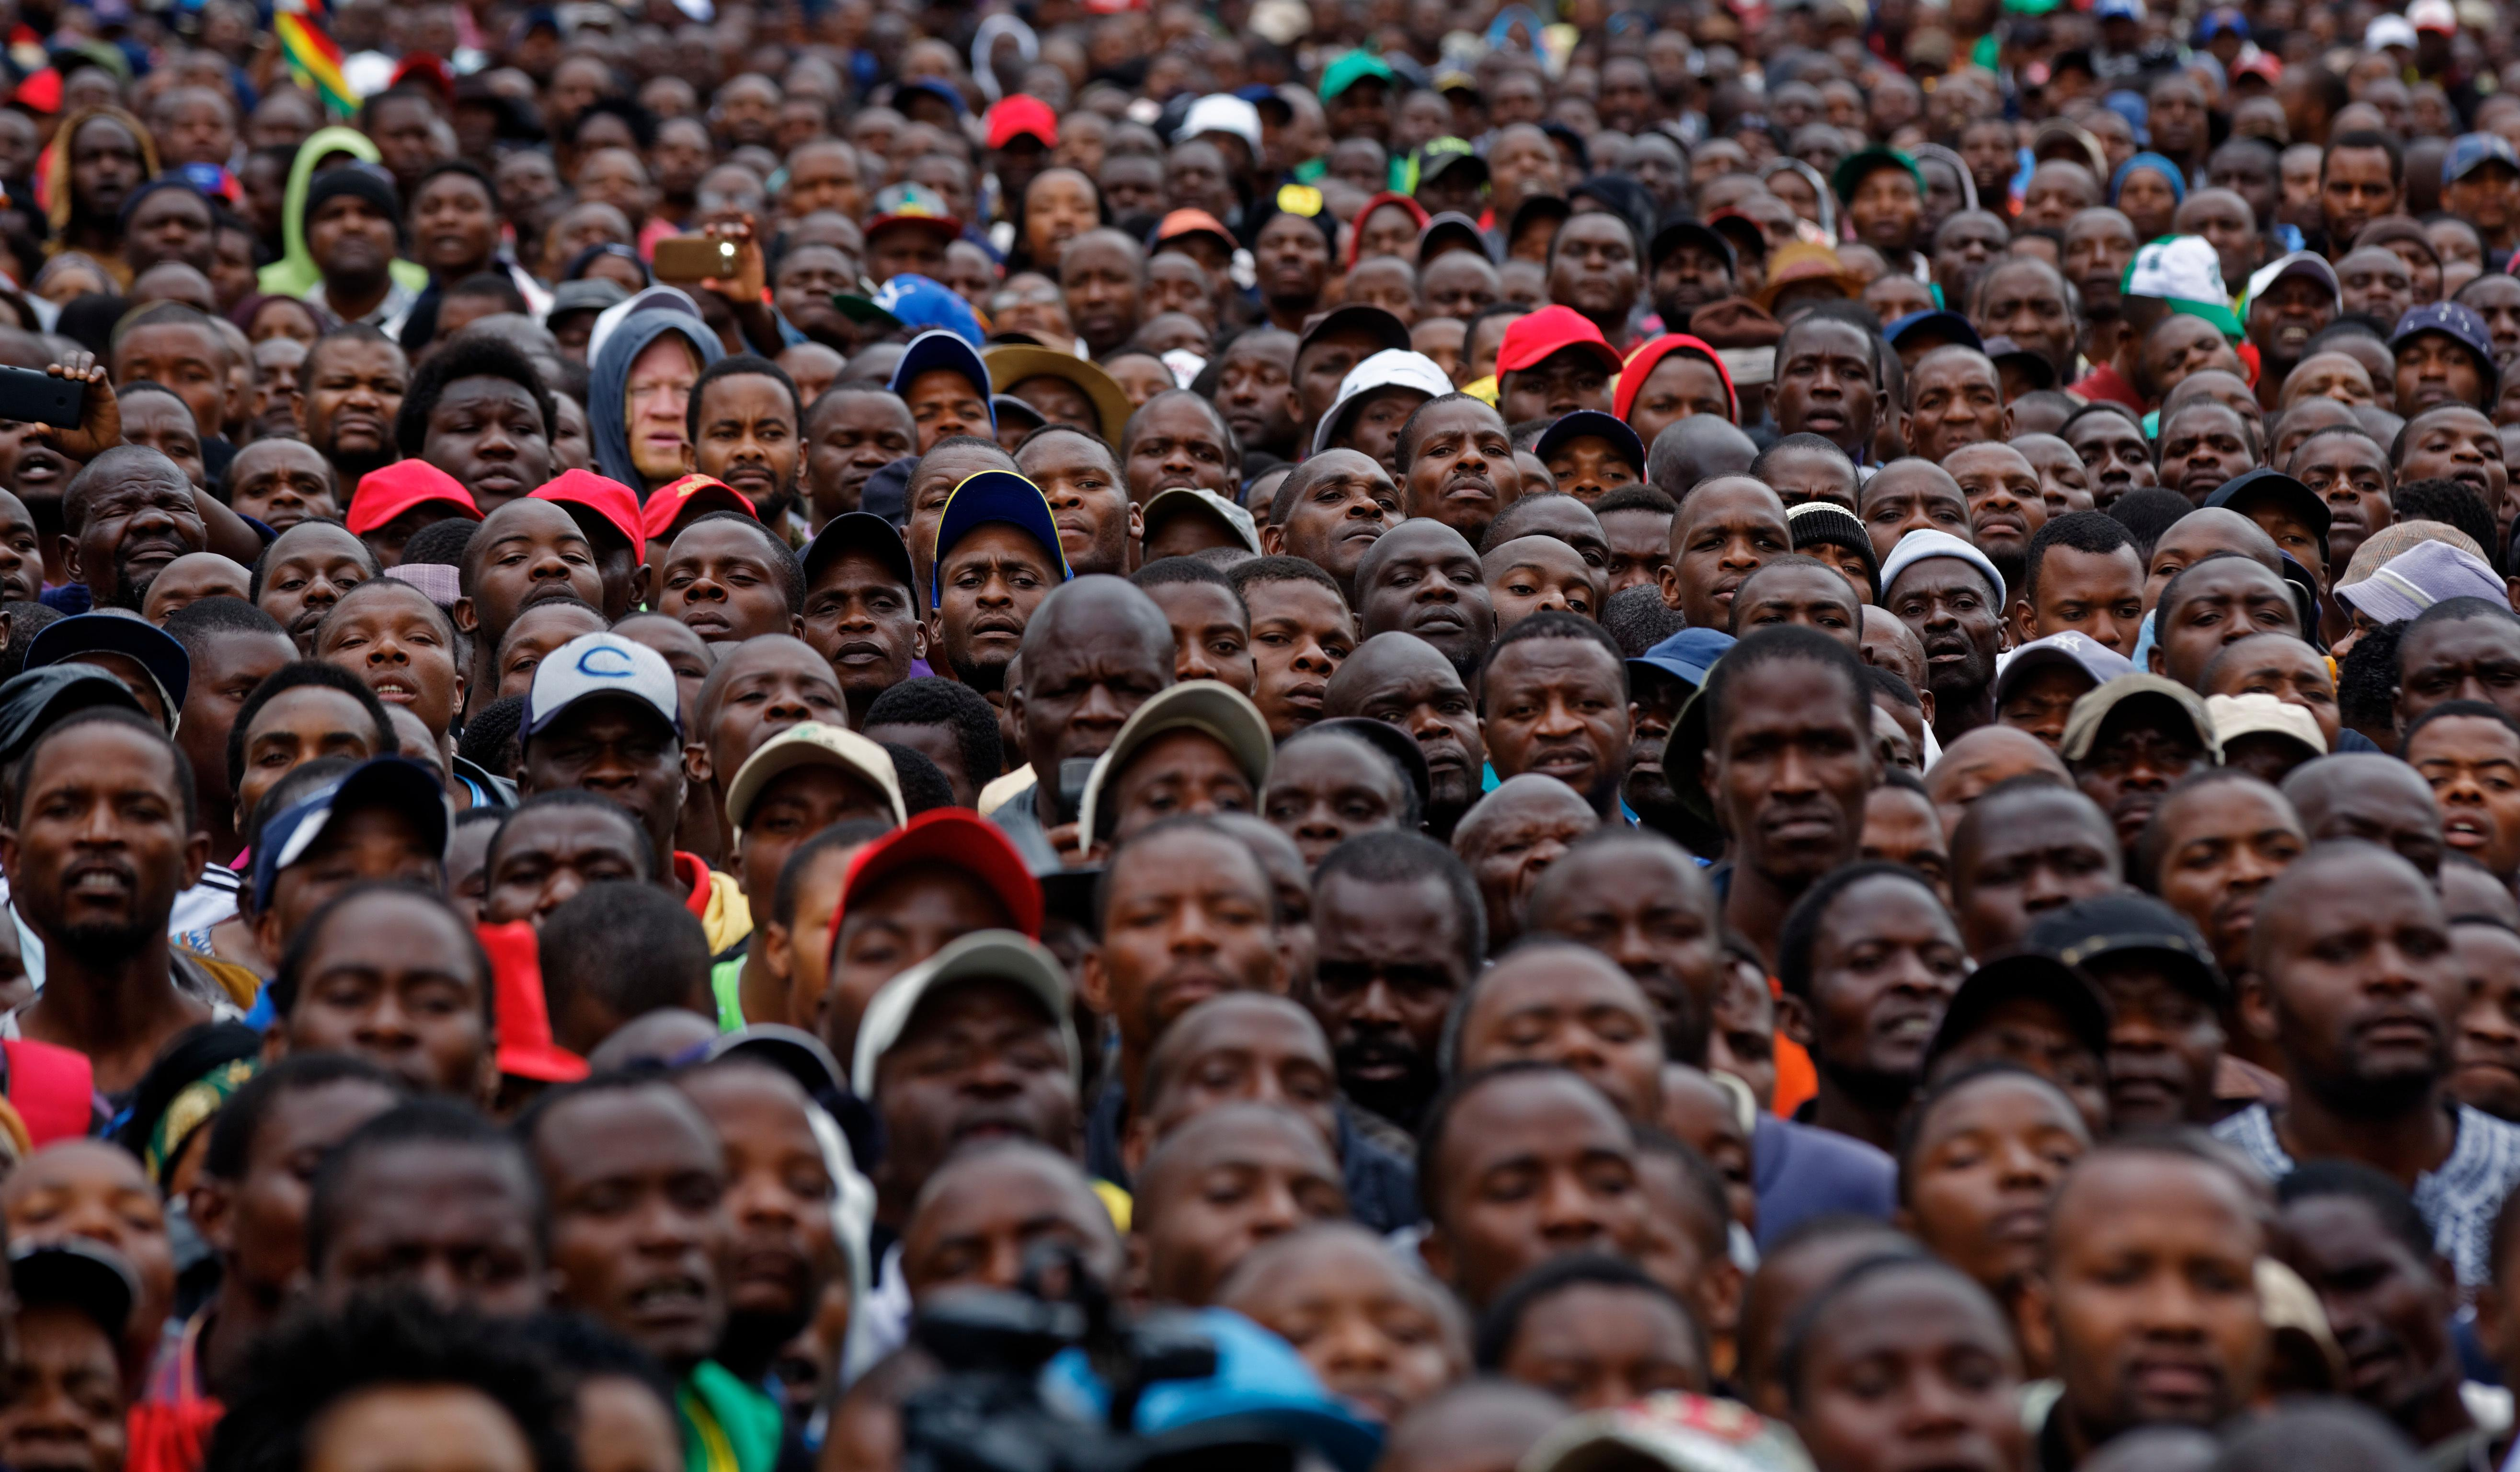 Protesters gather at a demonstration of tens of thousands at Zimbabwe Grounds in Harare, Zimbabwe Saturday, Nov. 18, 2017. Opponents of Mugabe are demonstrating for the ouster of the 93-year-old leader who is virtually powerless and deserted by most of his allies. (AP Photo/Ben Curtis)